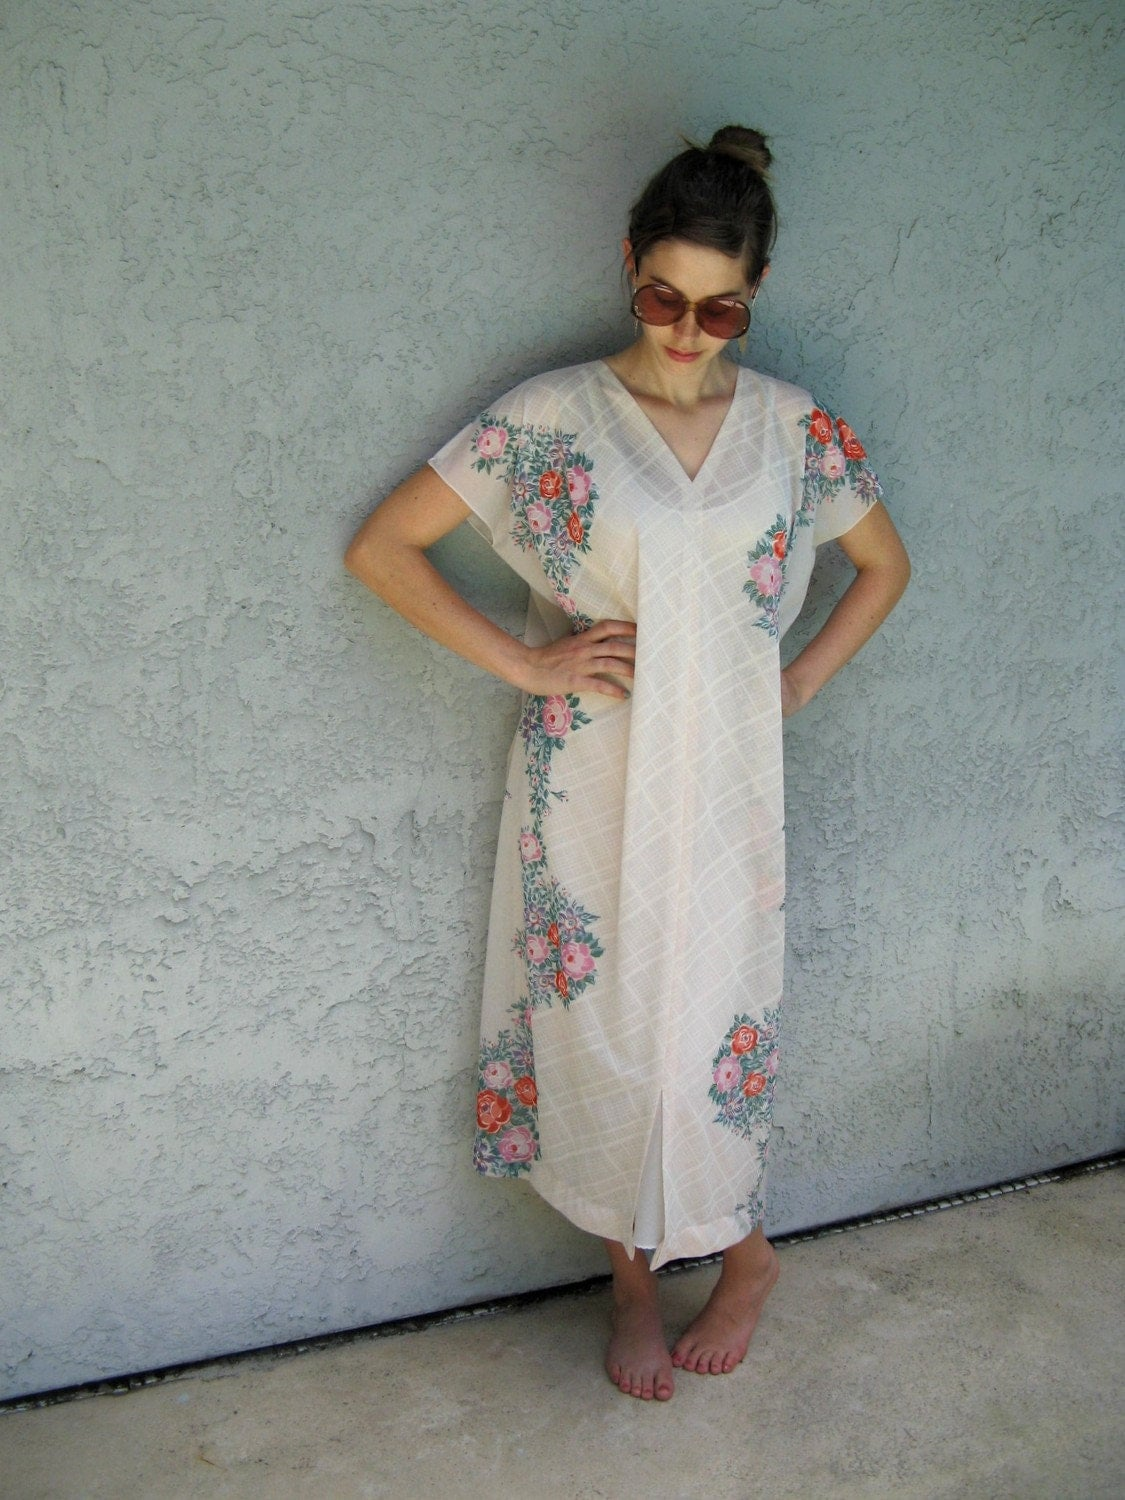 Vintage 70s Hippie Flower Power Sheer White MAXI MUMU dress with Dramatic Angel Wing Sleeves